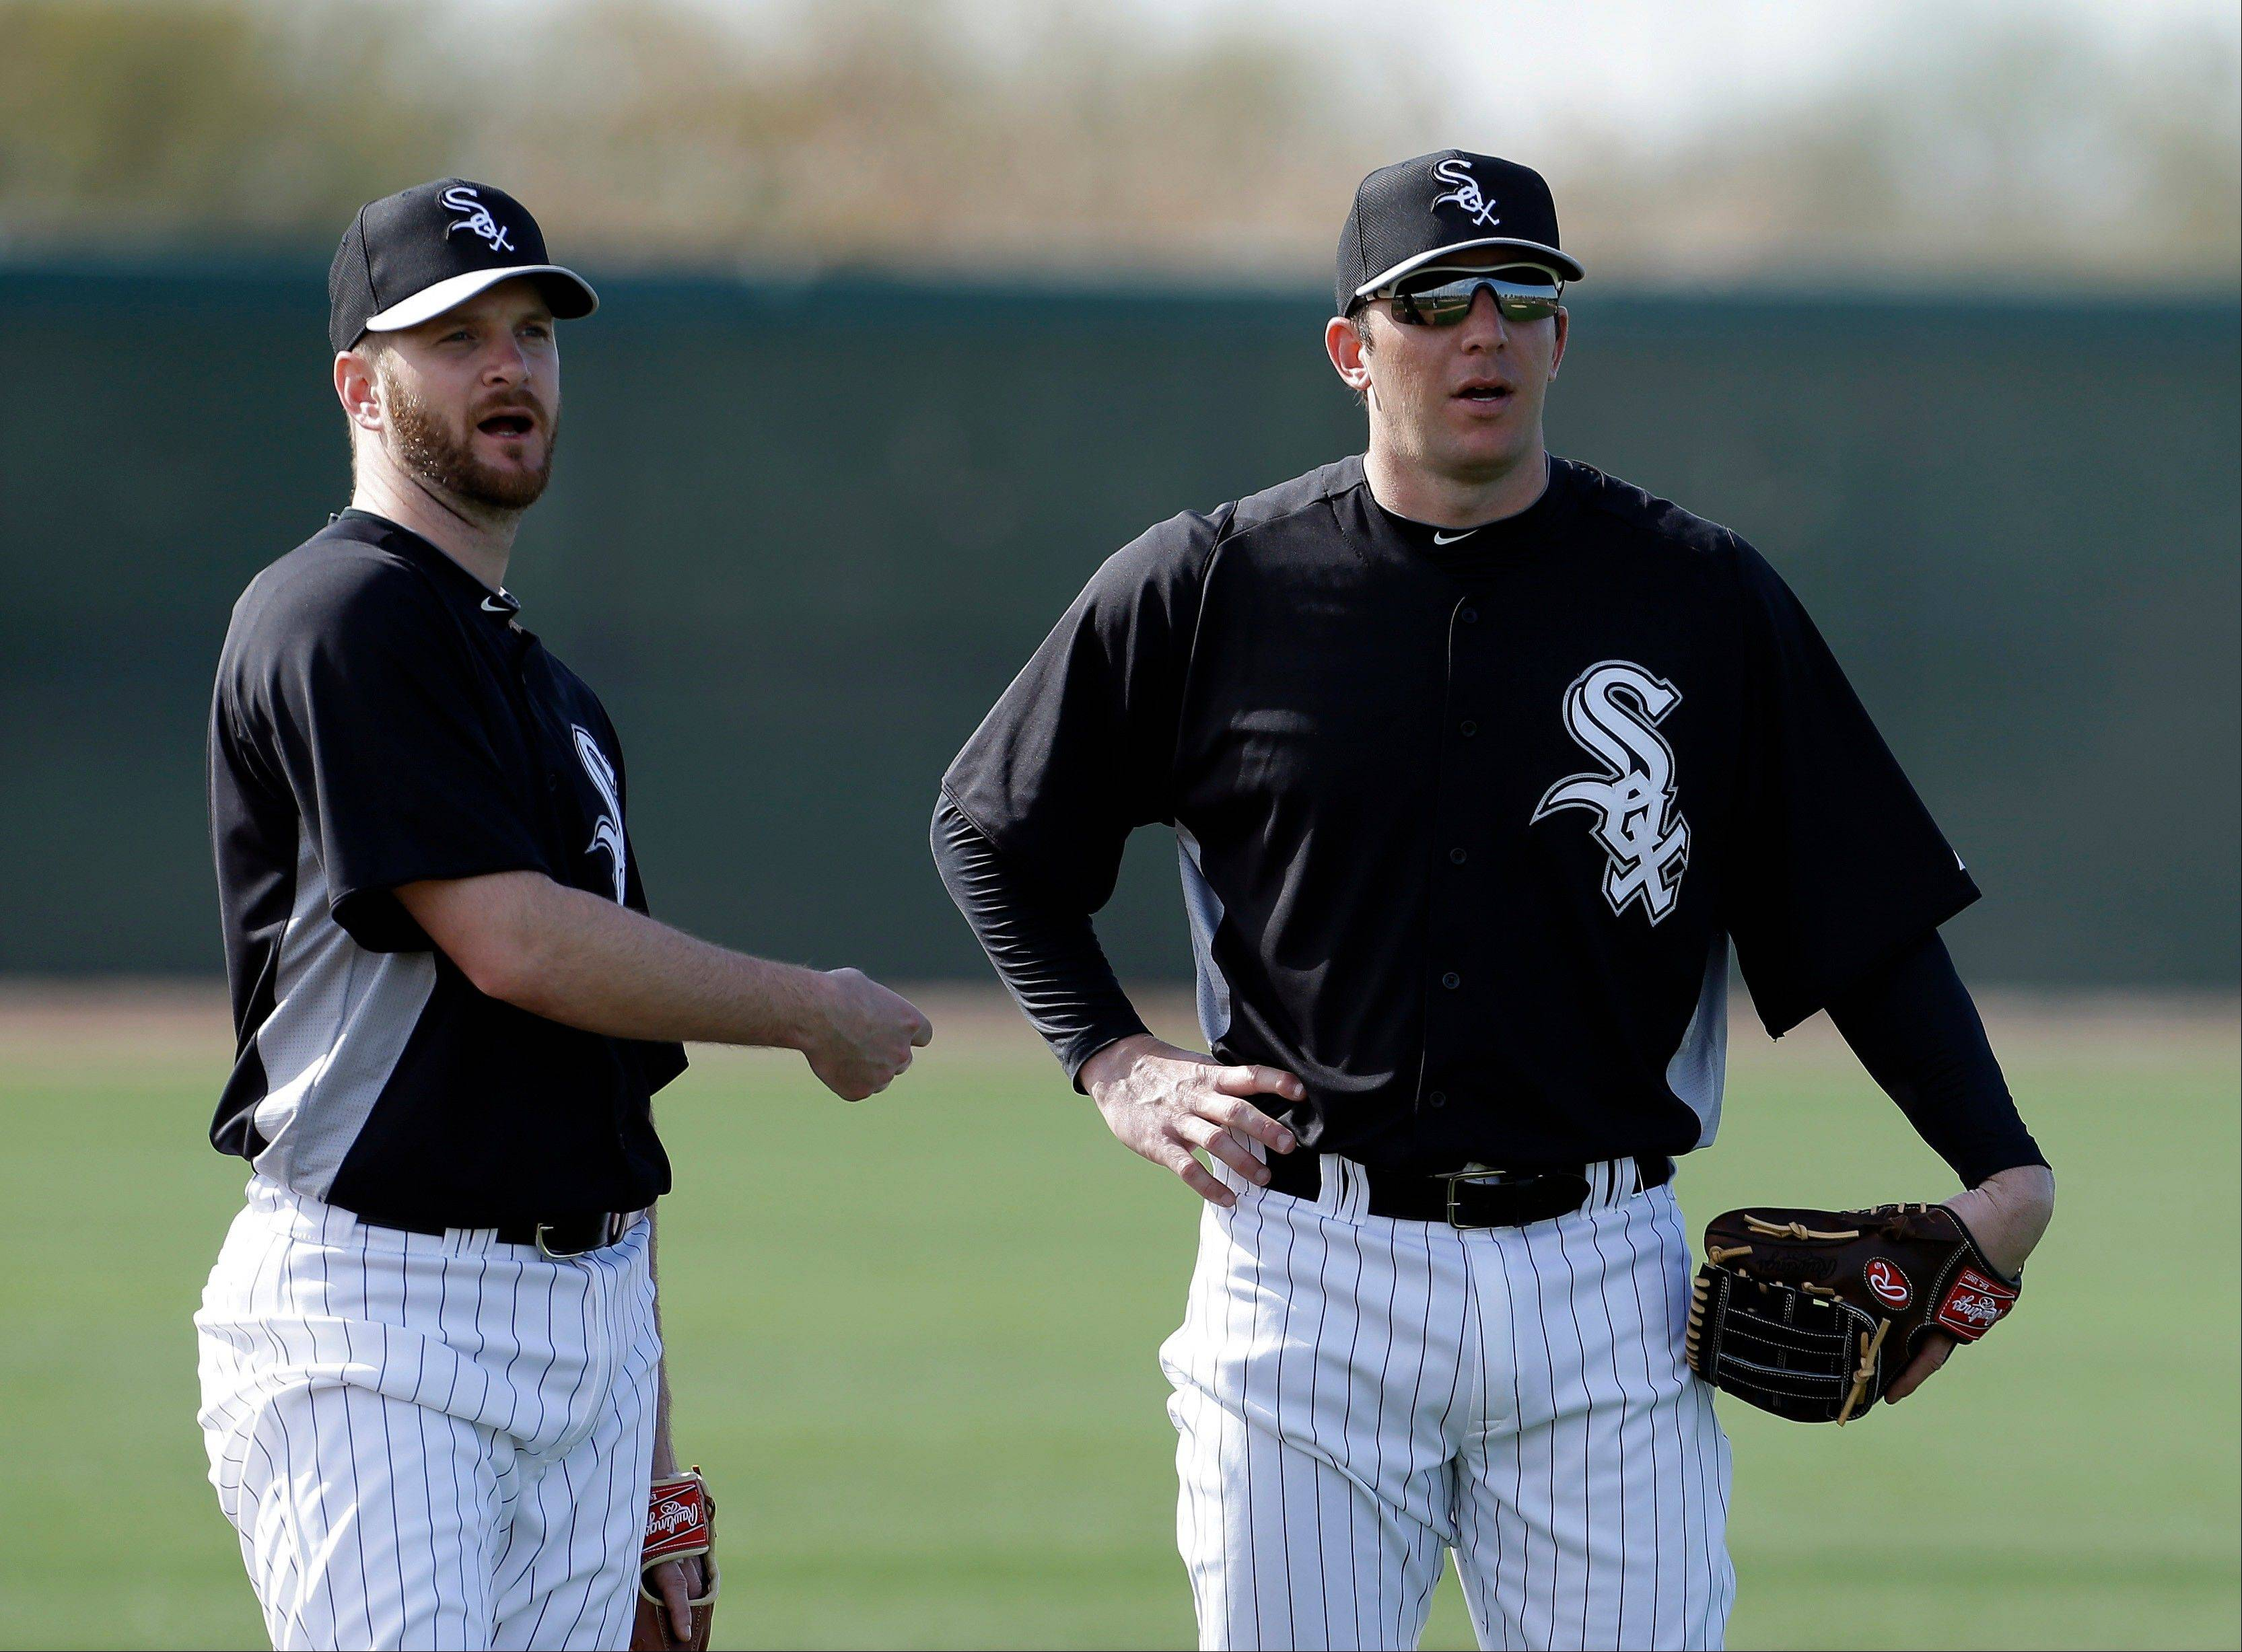 Chicago White Sox's Jeff Keppinger, left, talks with Brent Morel during a spring training baseball workout Tuesday, Feb. 19, 2013, in Phoenix.